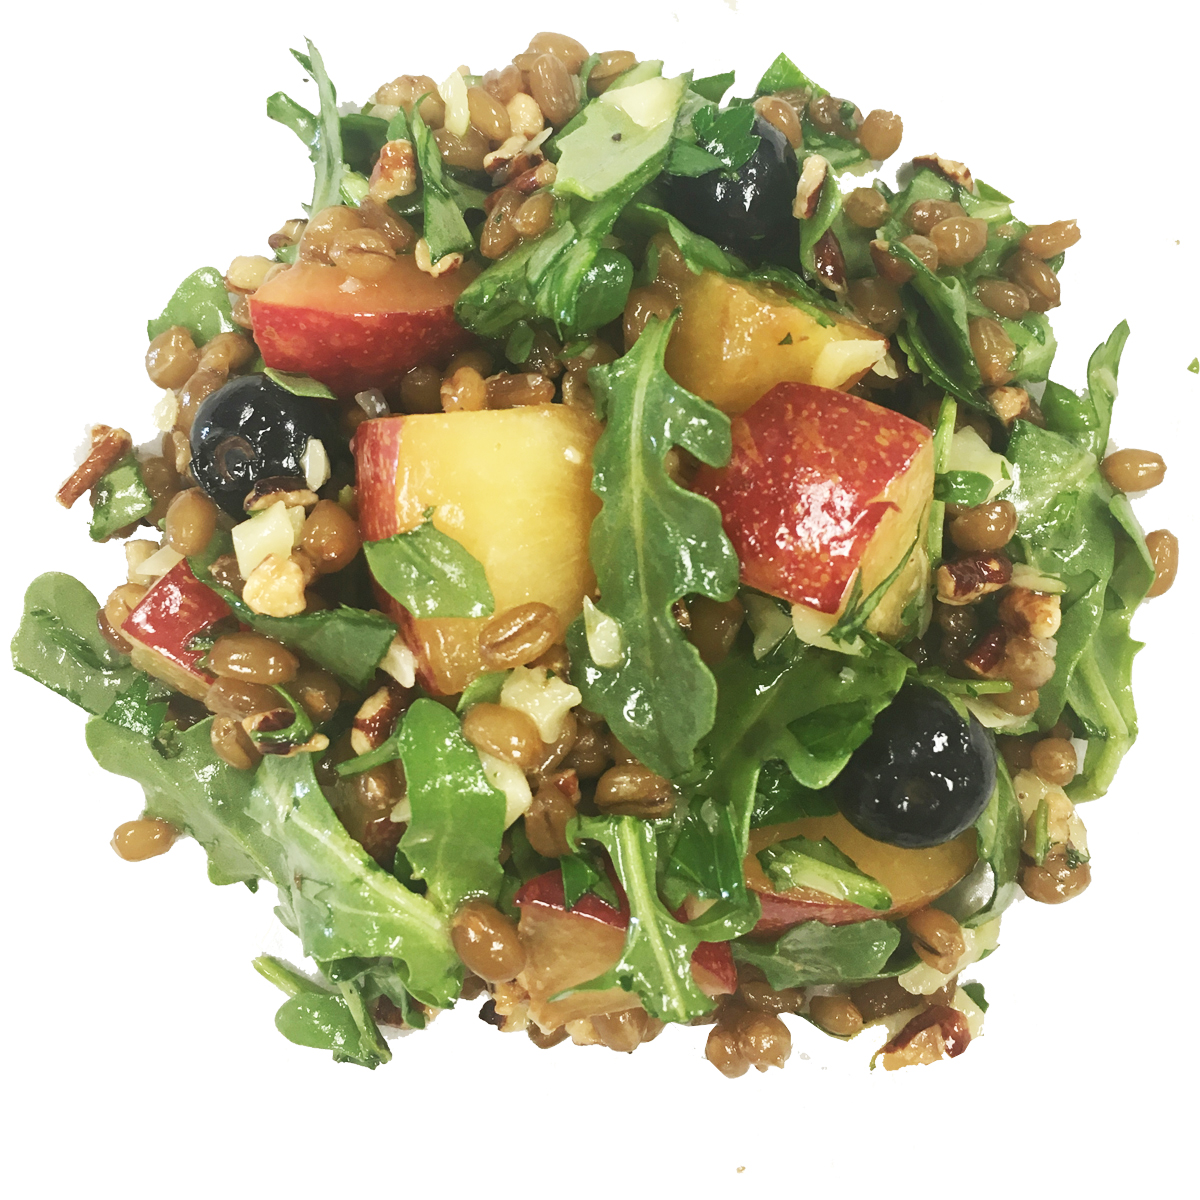 Wheat berries with fruit and greens - We start with slow cooked whole grain wheat berries that are nutty and protein-packed. For summer we use tree ripened organic pluots (plum/apricot) and plump blueberries (photo). In Fall/Winter we switch to crisp sweet organic apples, pomegranate seeds and figs if available. We finish it with cave aged white cheddar and chopped pecans.Dressing: Summer uses peach balsamic to emphasize the stone fruit flavor. Winter uses Pomegranate or Fig Balsamic. Both are mellowed with a buttery arbequina extra virgin olive oil.Calories per serving: 210Price/lb: $10.00